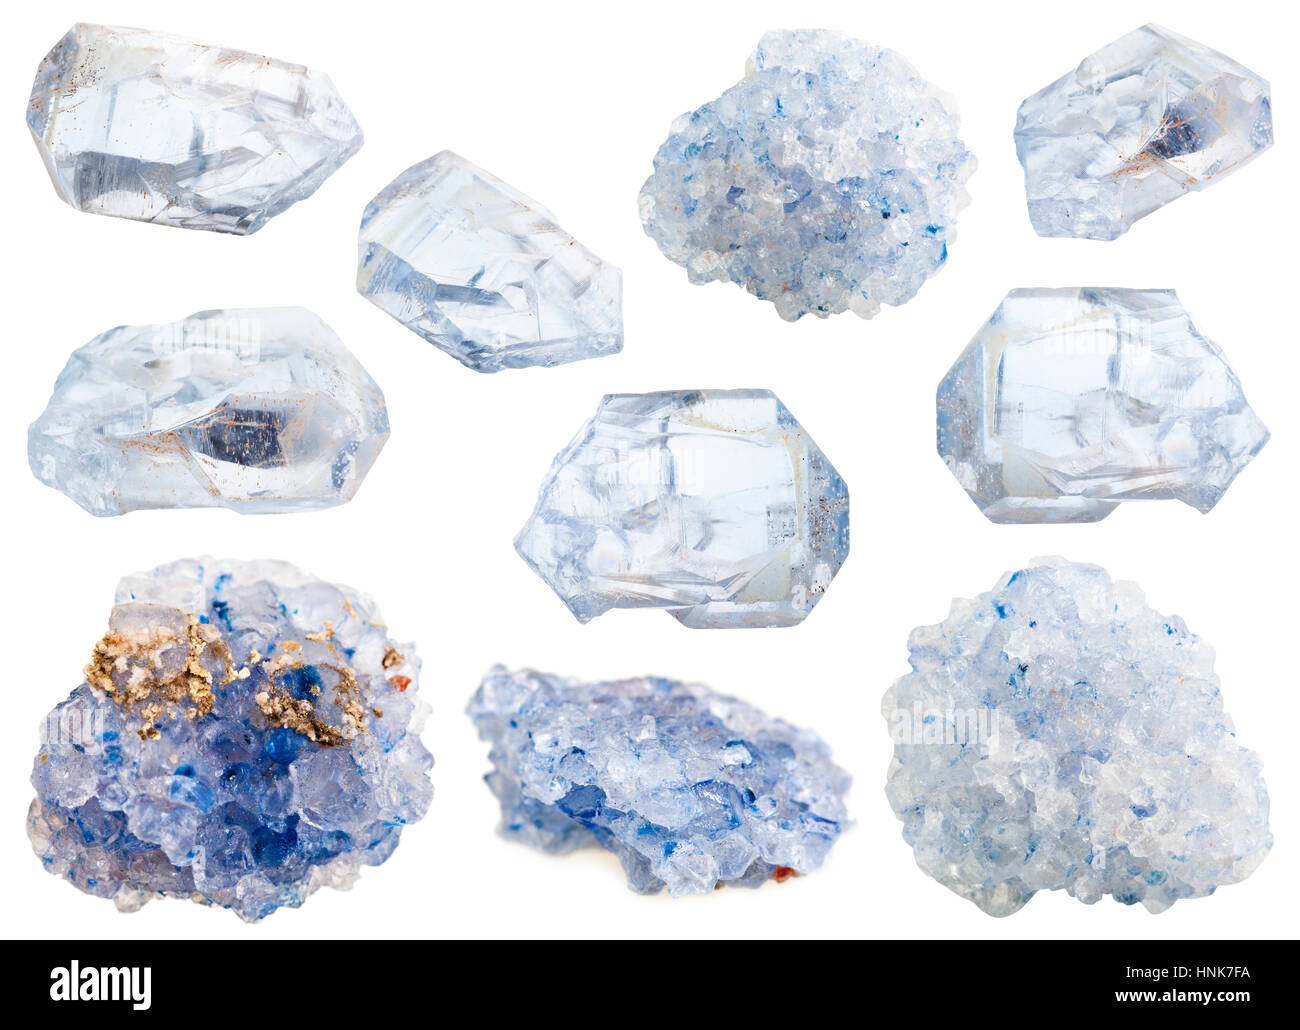 collection of various celestine mineral stones isolated on white background - Stock Image